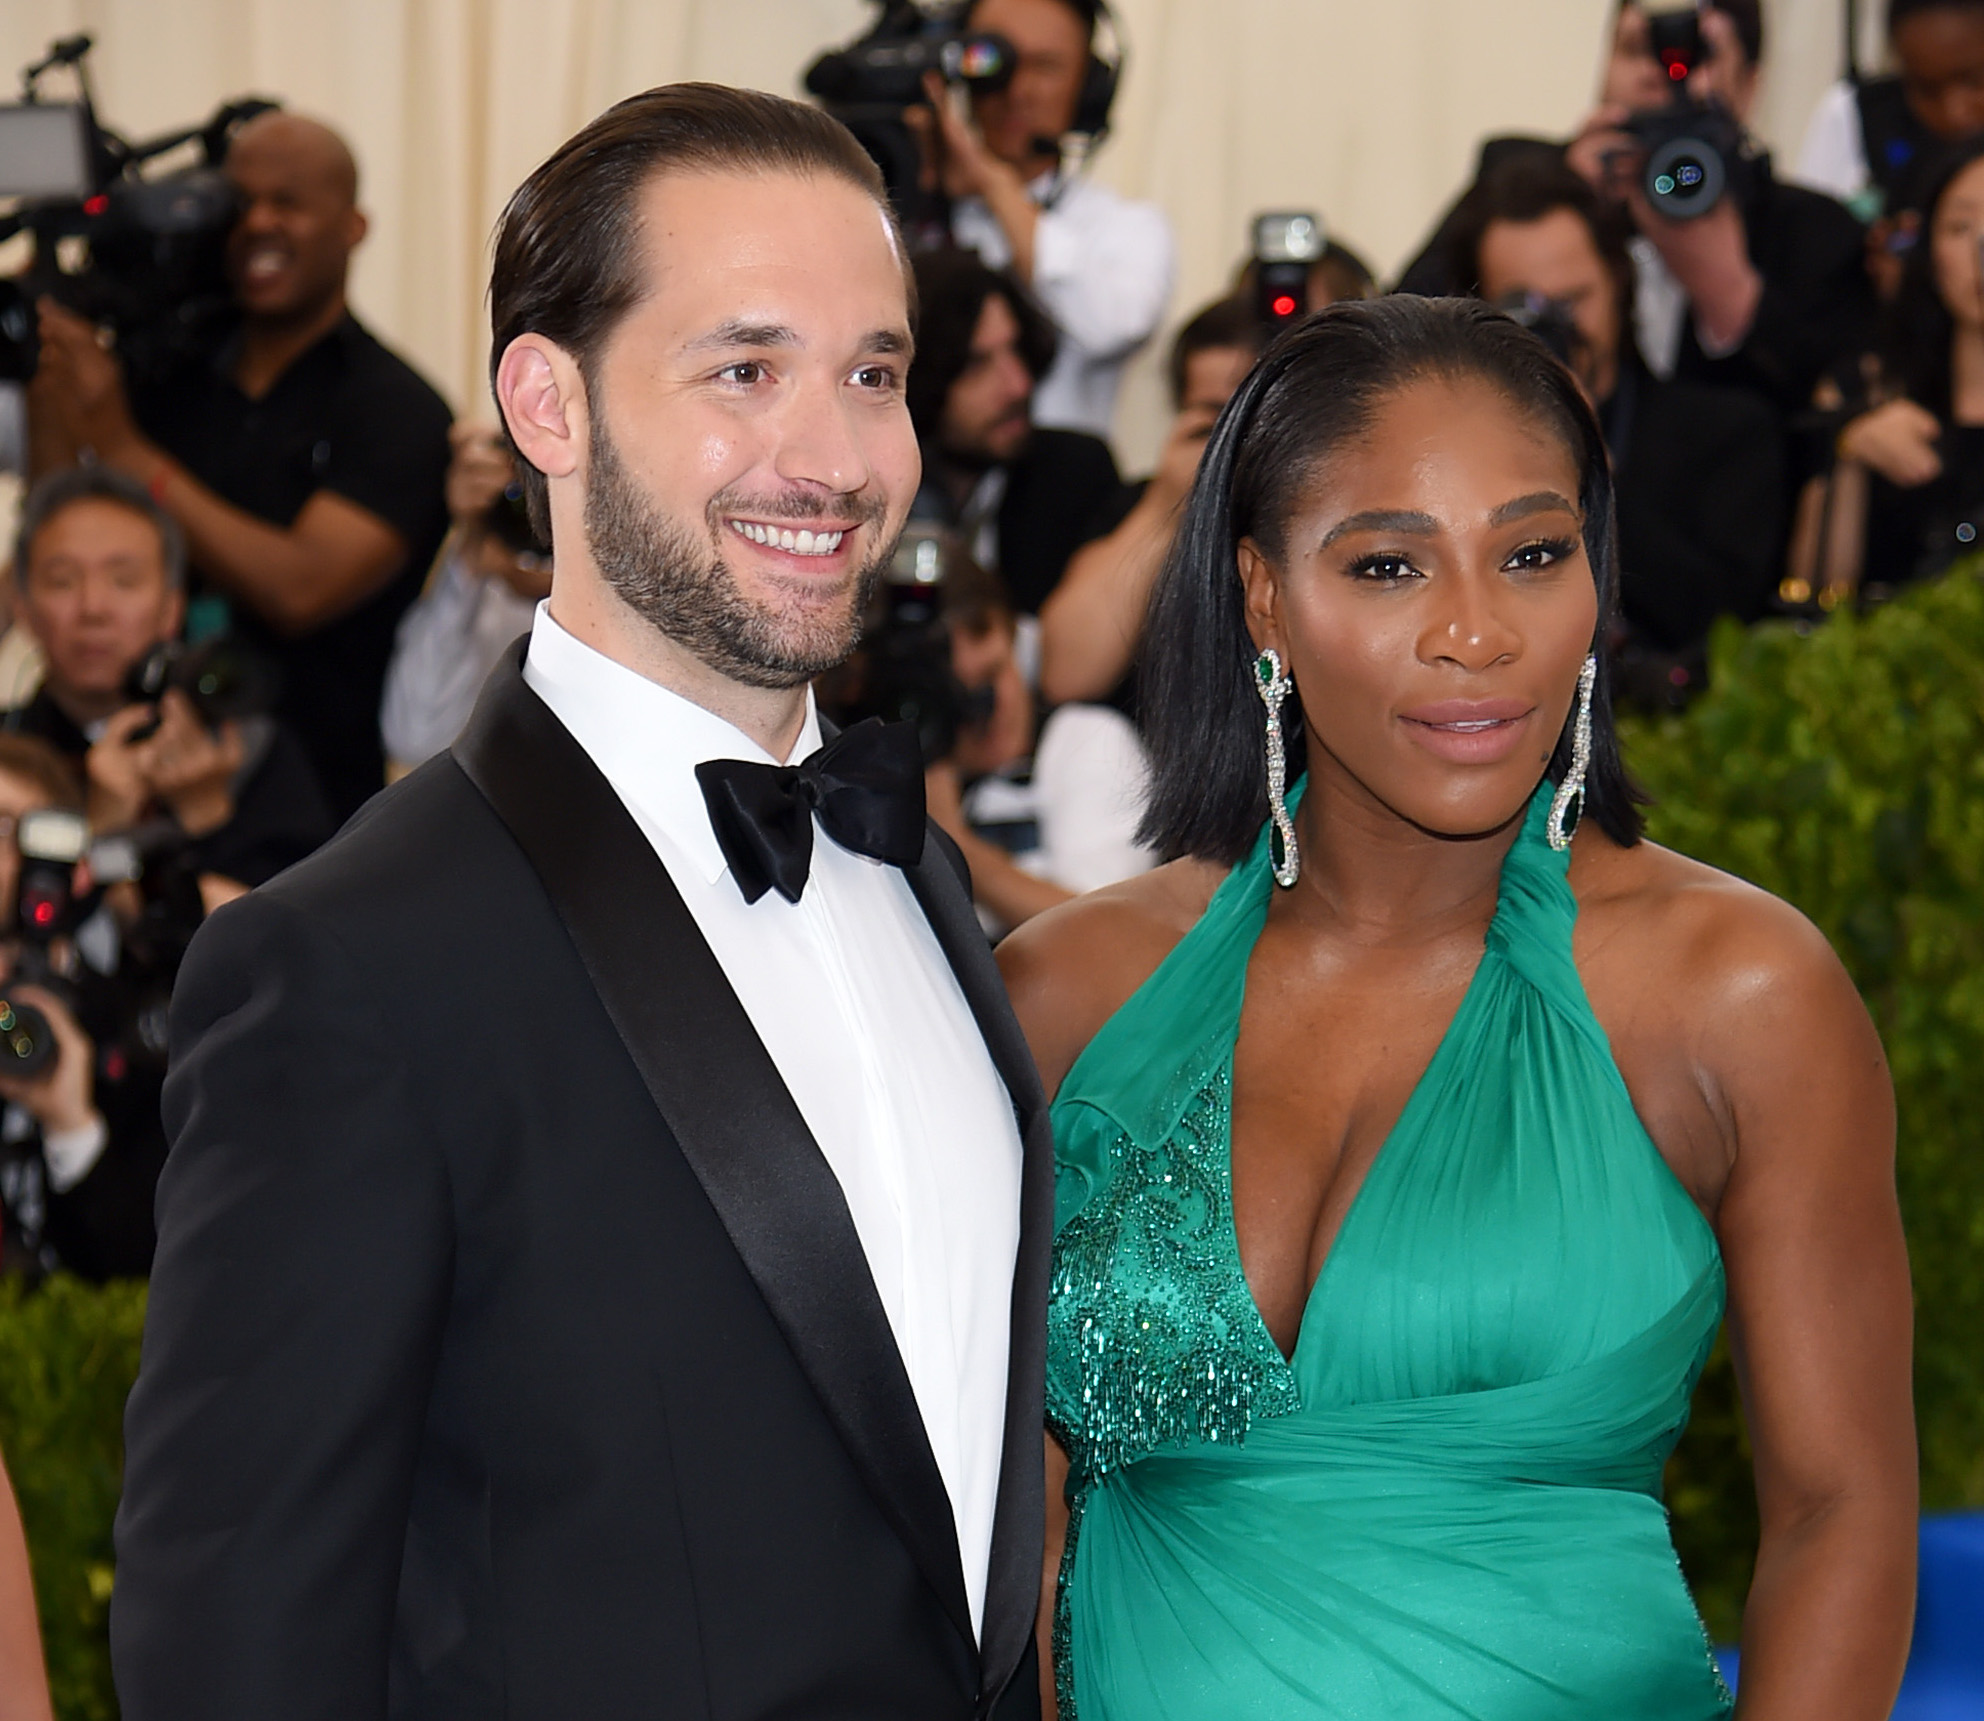 Serena Williams to Get Married This Week in New Orleans